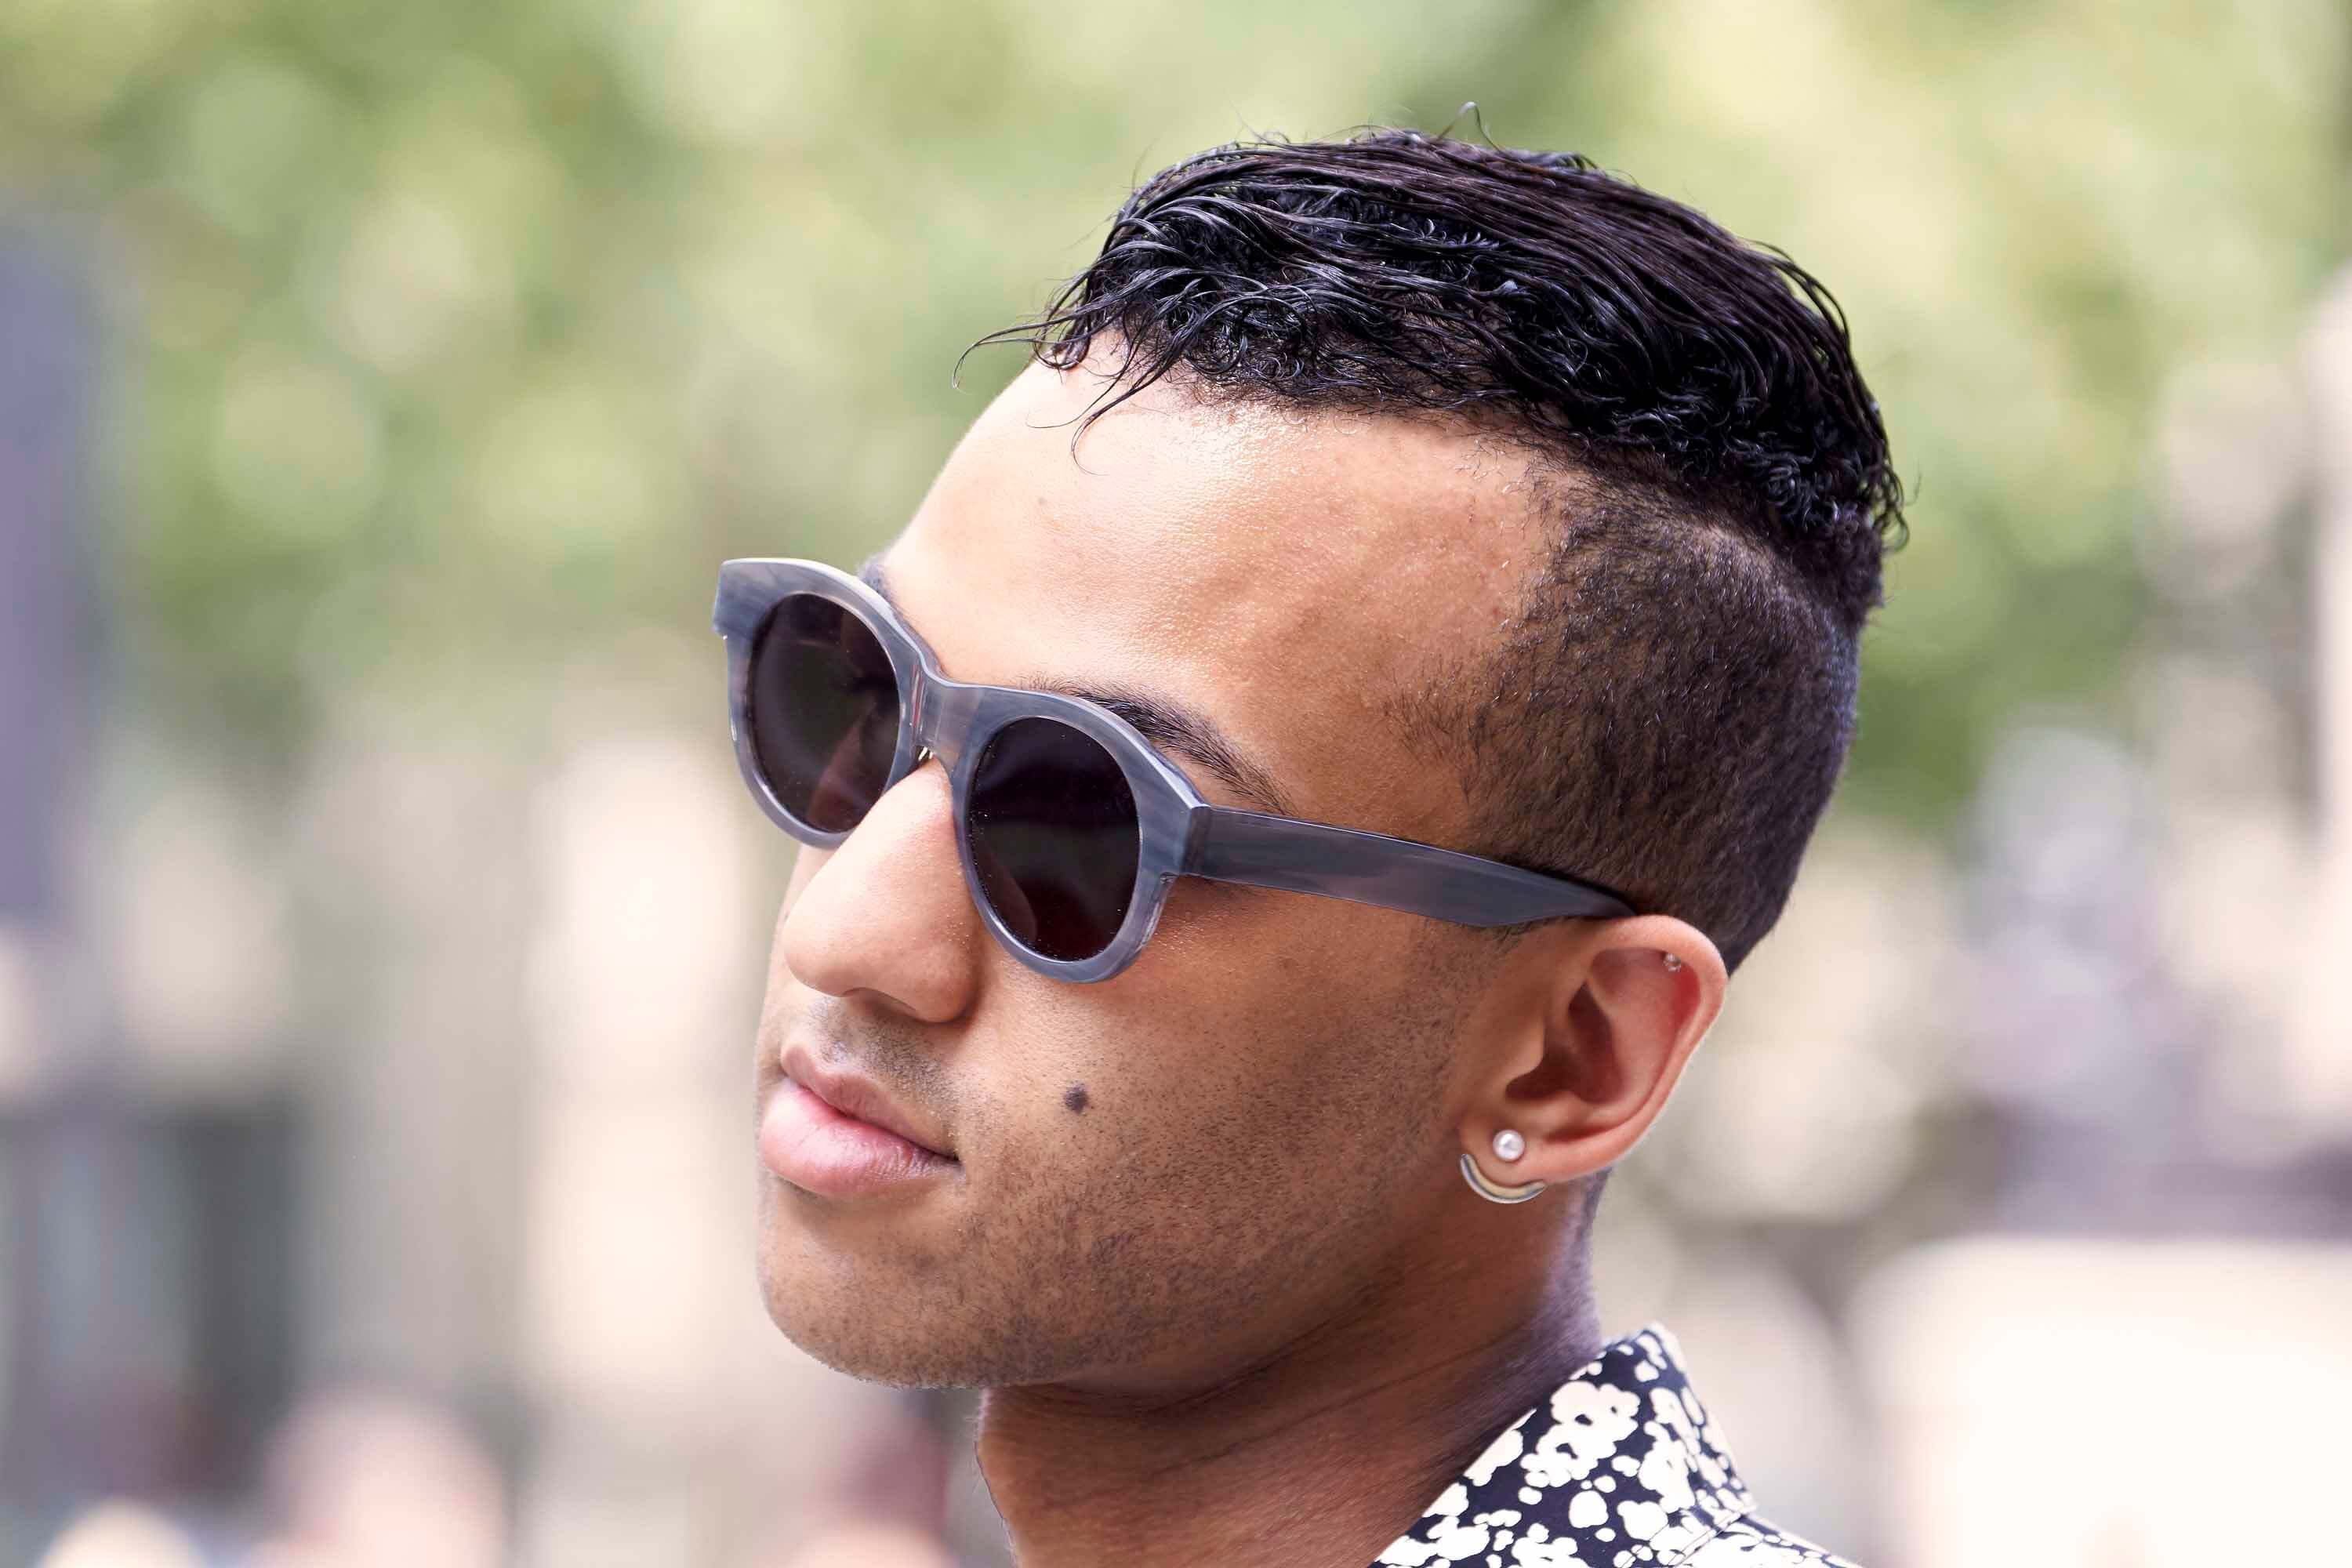 Hair Style Mohawk: Mohawk Hairstyles For Men: 10 Modern Ways To Wear This